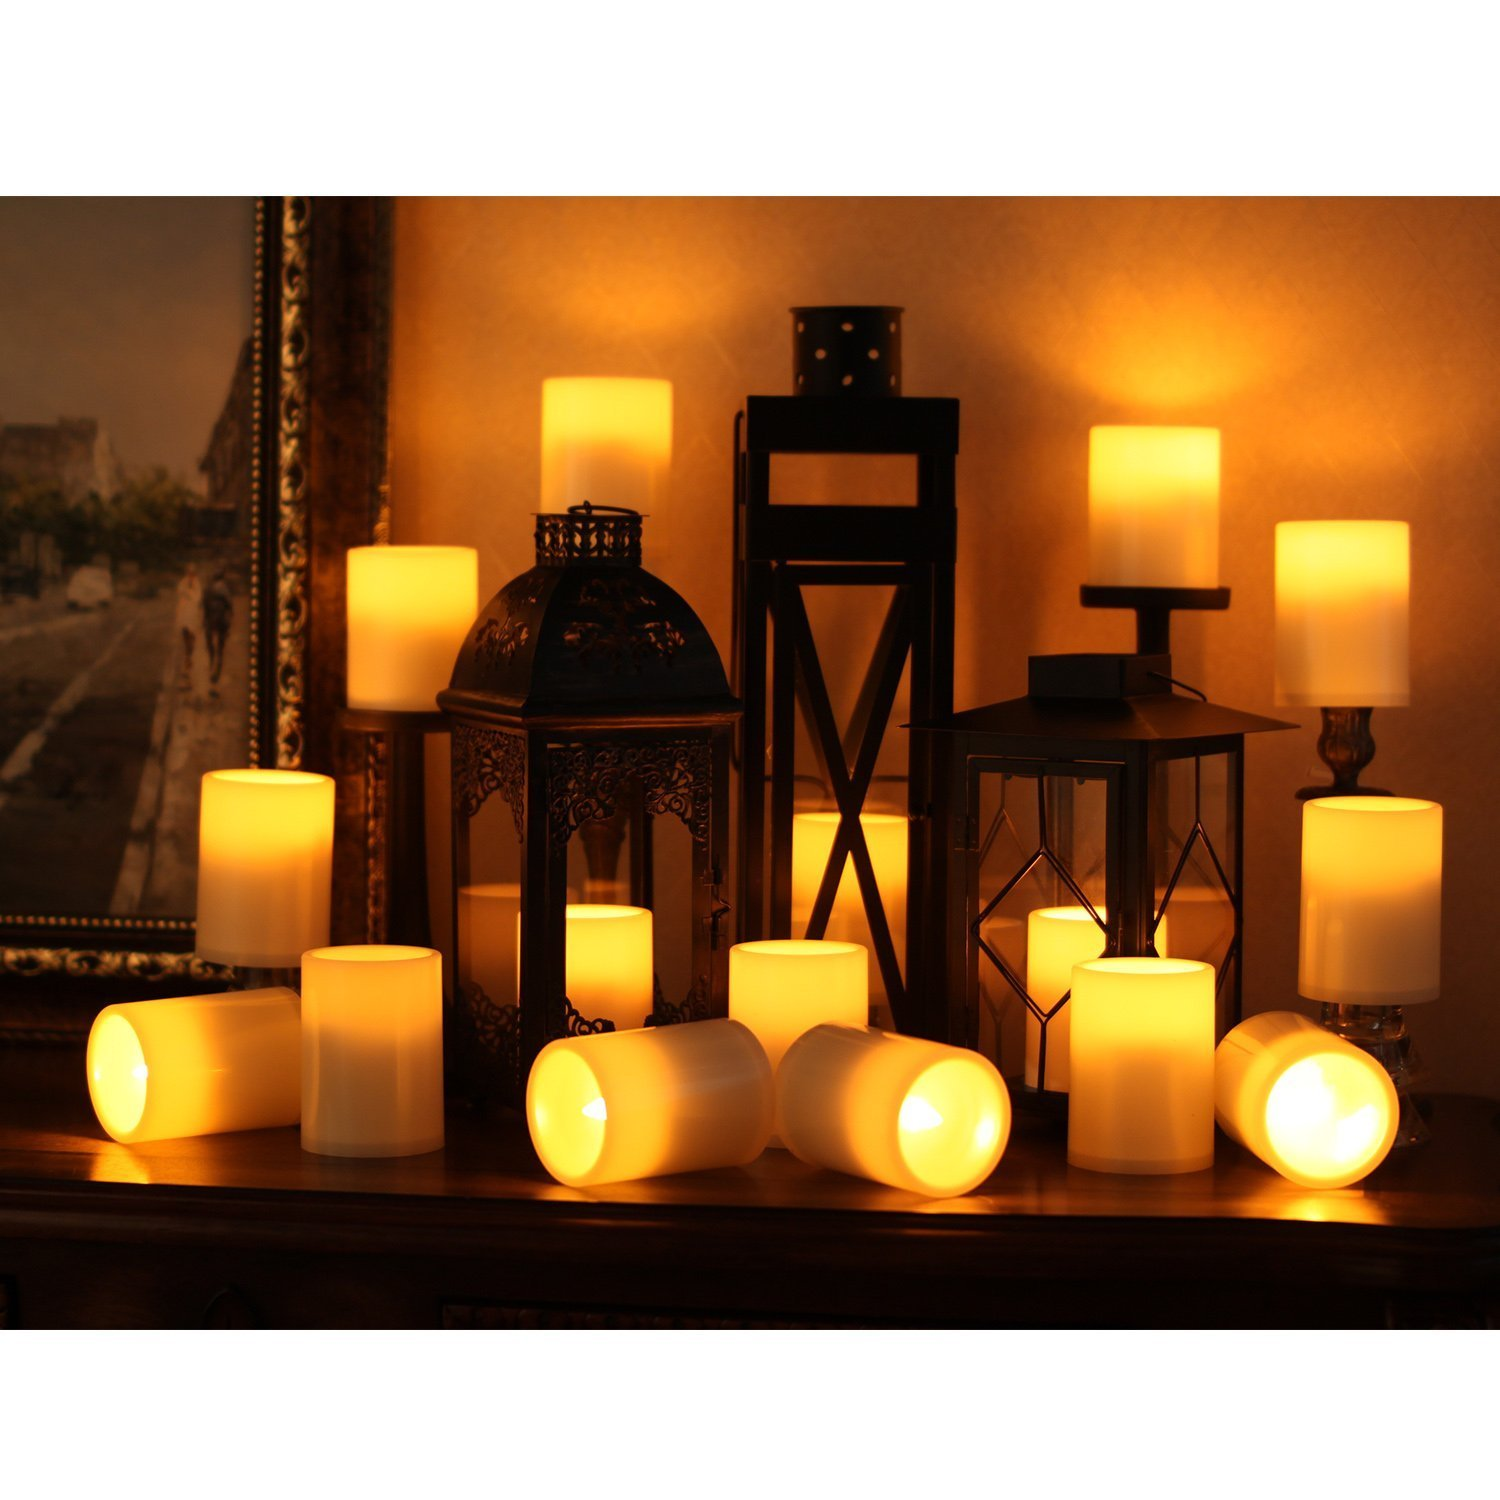 ELEOPTION Indoor/Outdoor Flameless Resin Pillar led Candle with 4 & 8 Hour Timer (24)